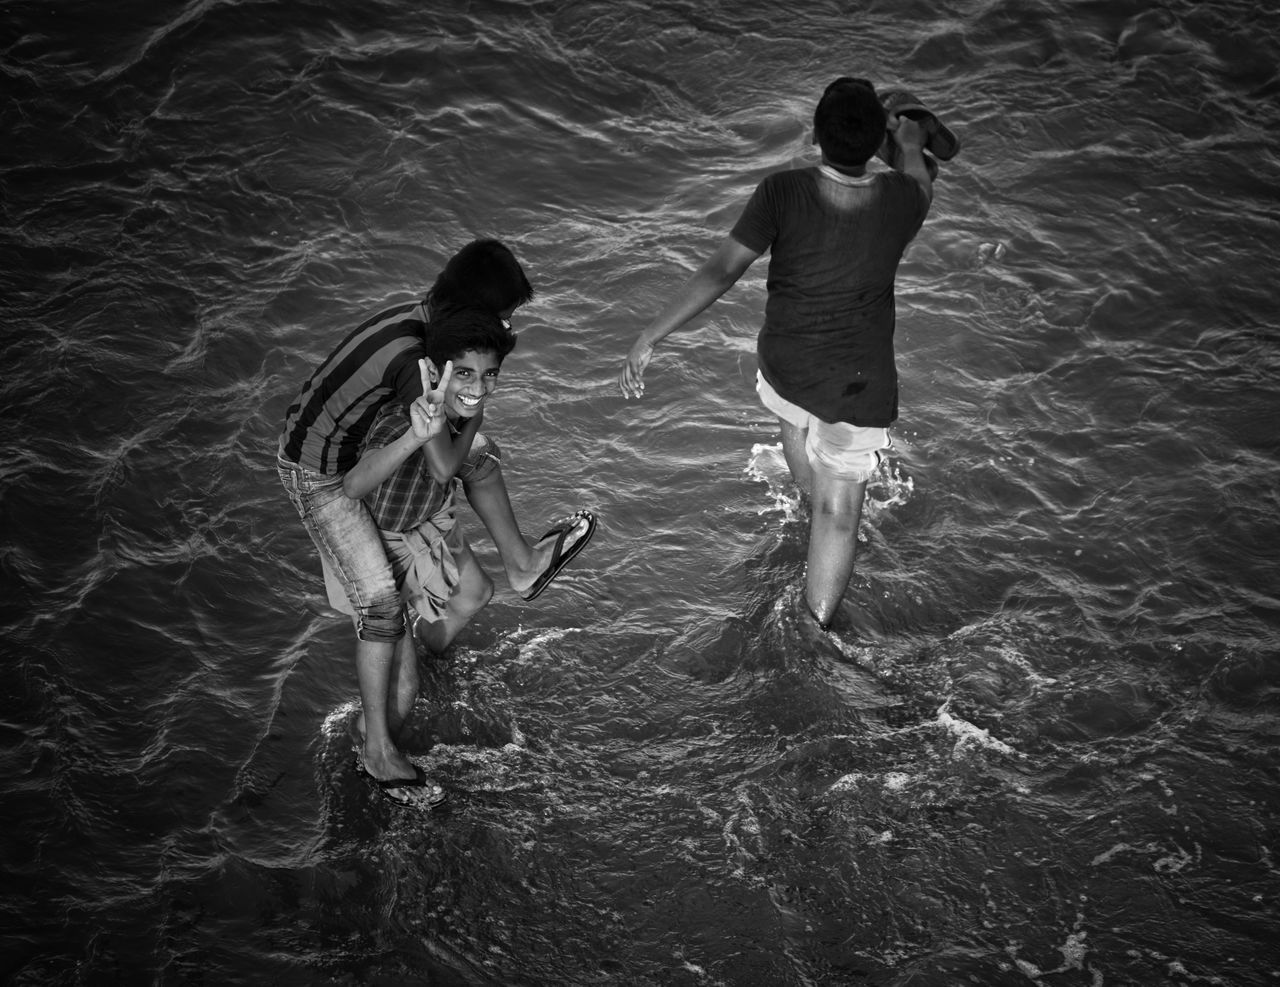 real people, water, high angle view, two people, full length, togetherness, outdoors, day, standing, sea, ankle deep in water, lifestyles, men, nature, swimming, childhood, people